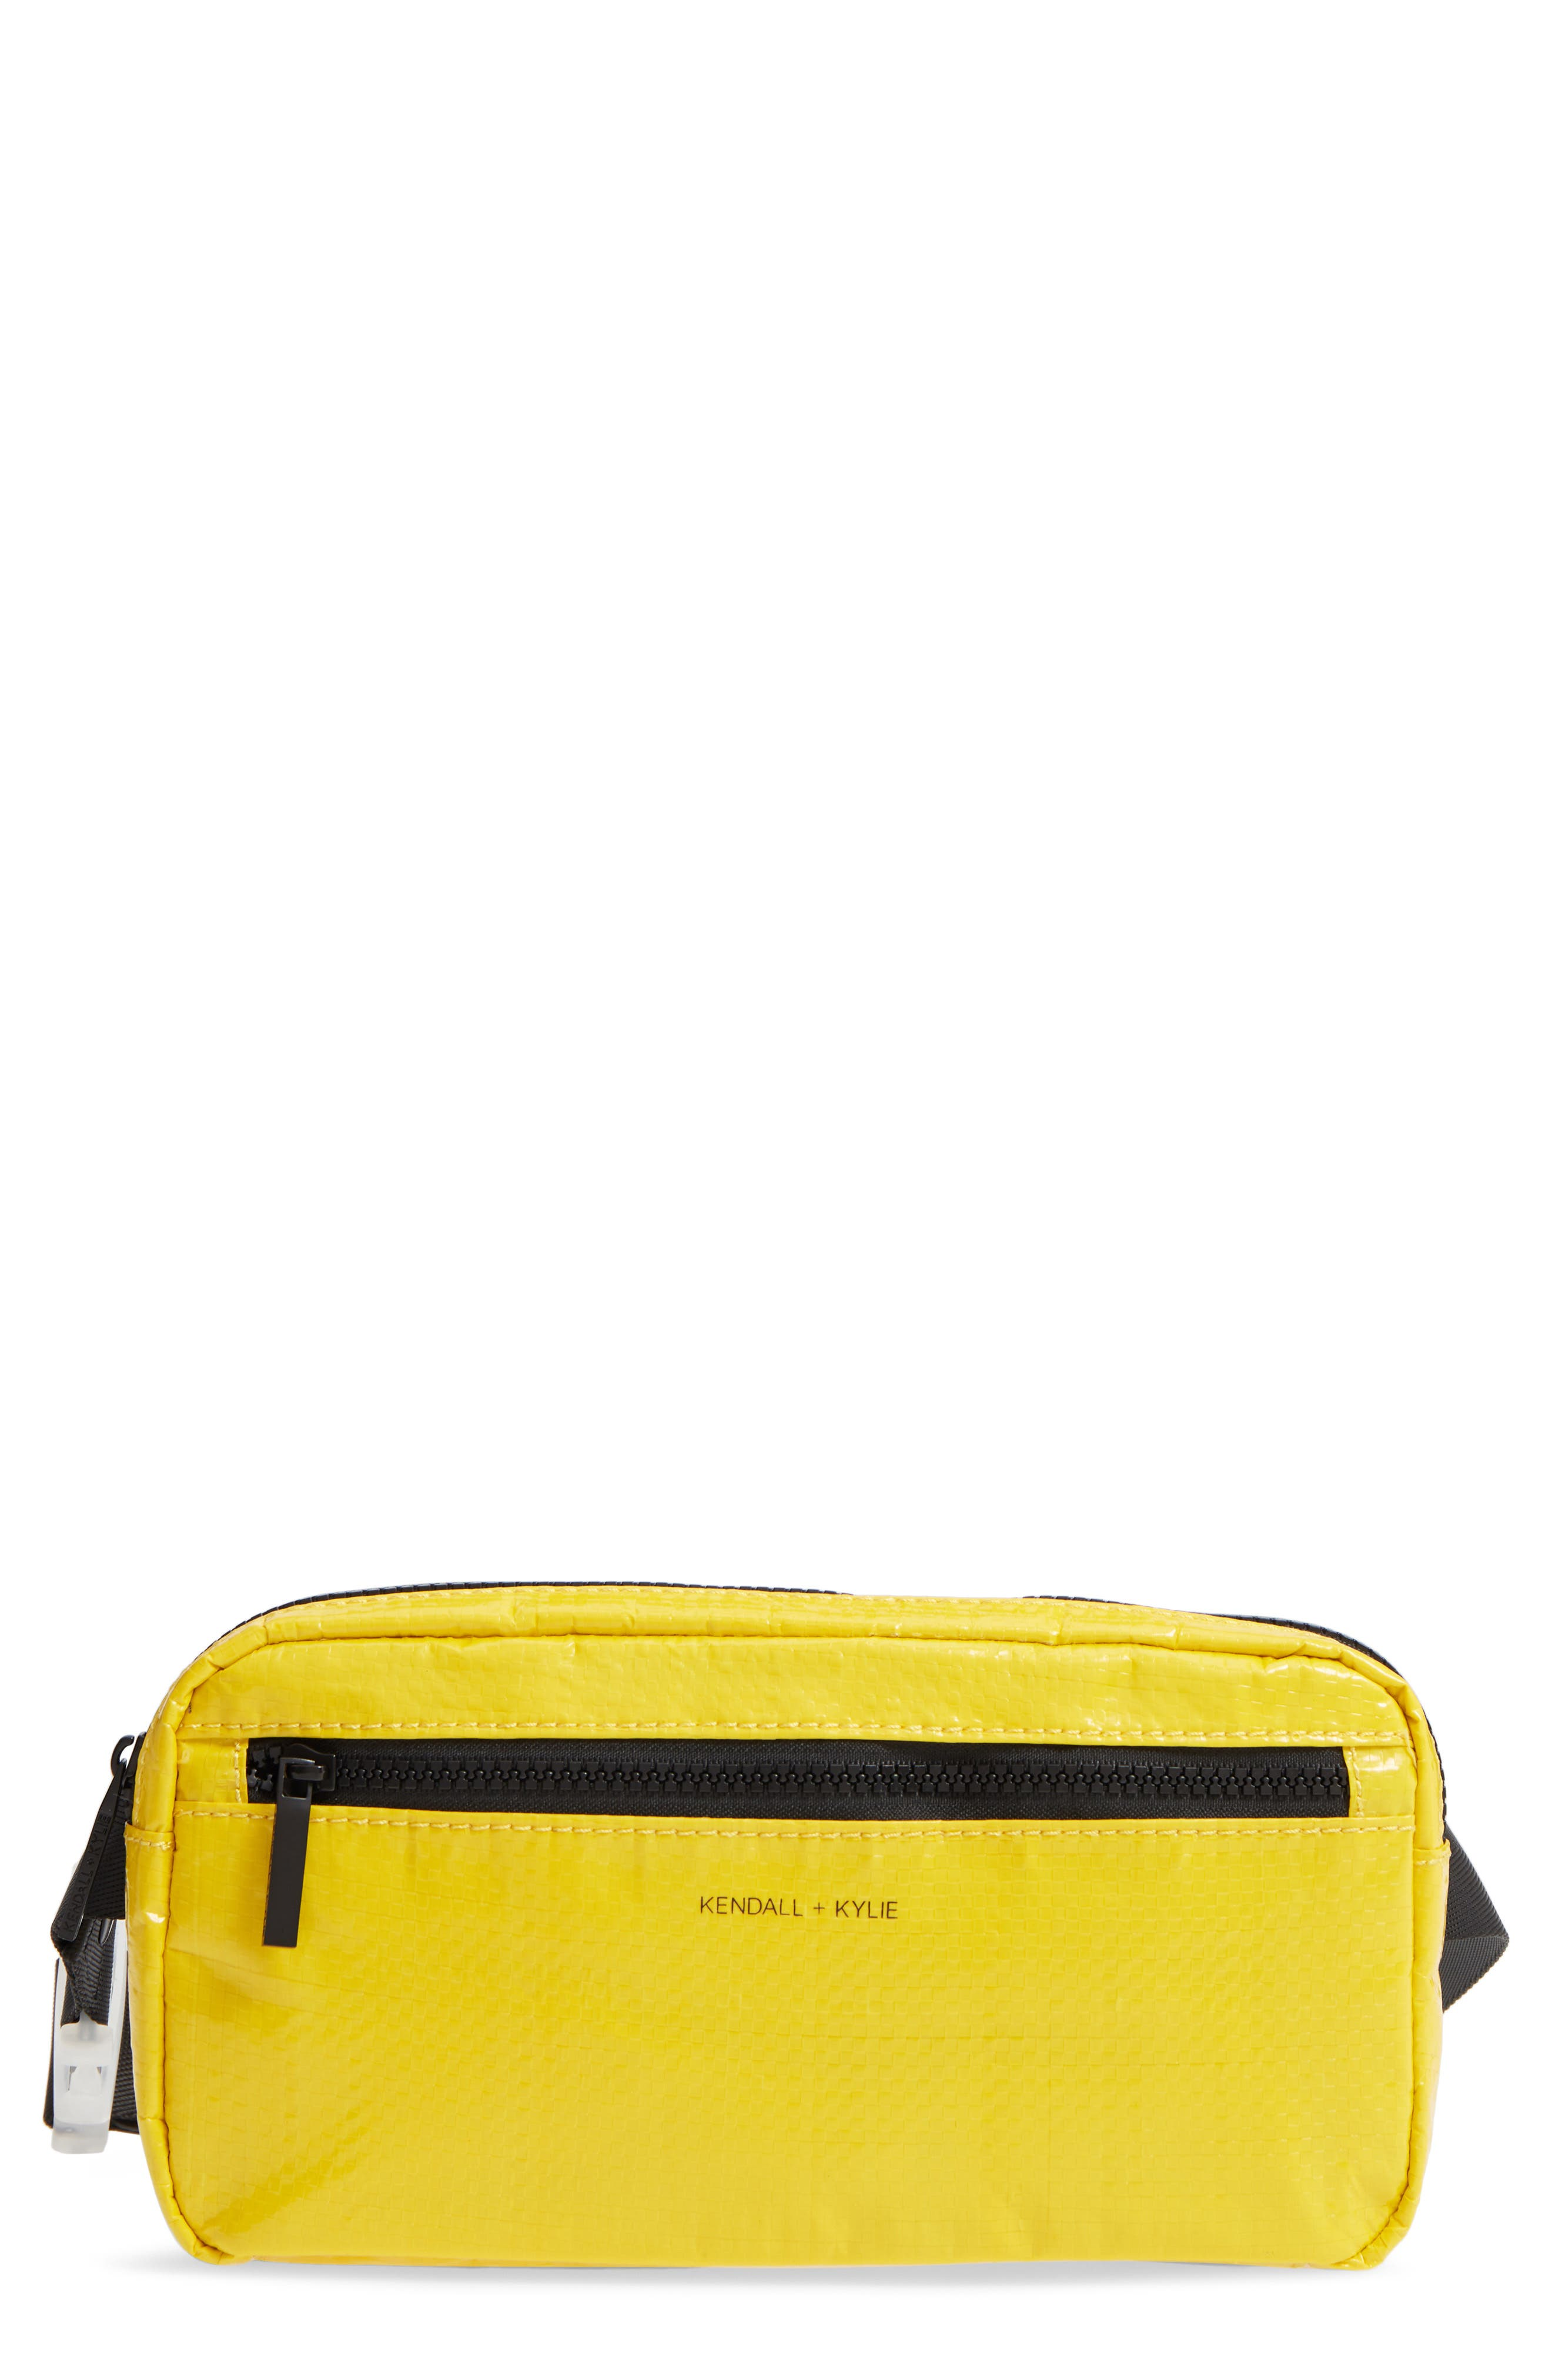 OLYMPIA BELTBAG - YELLOW